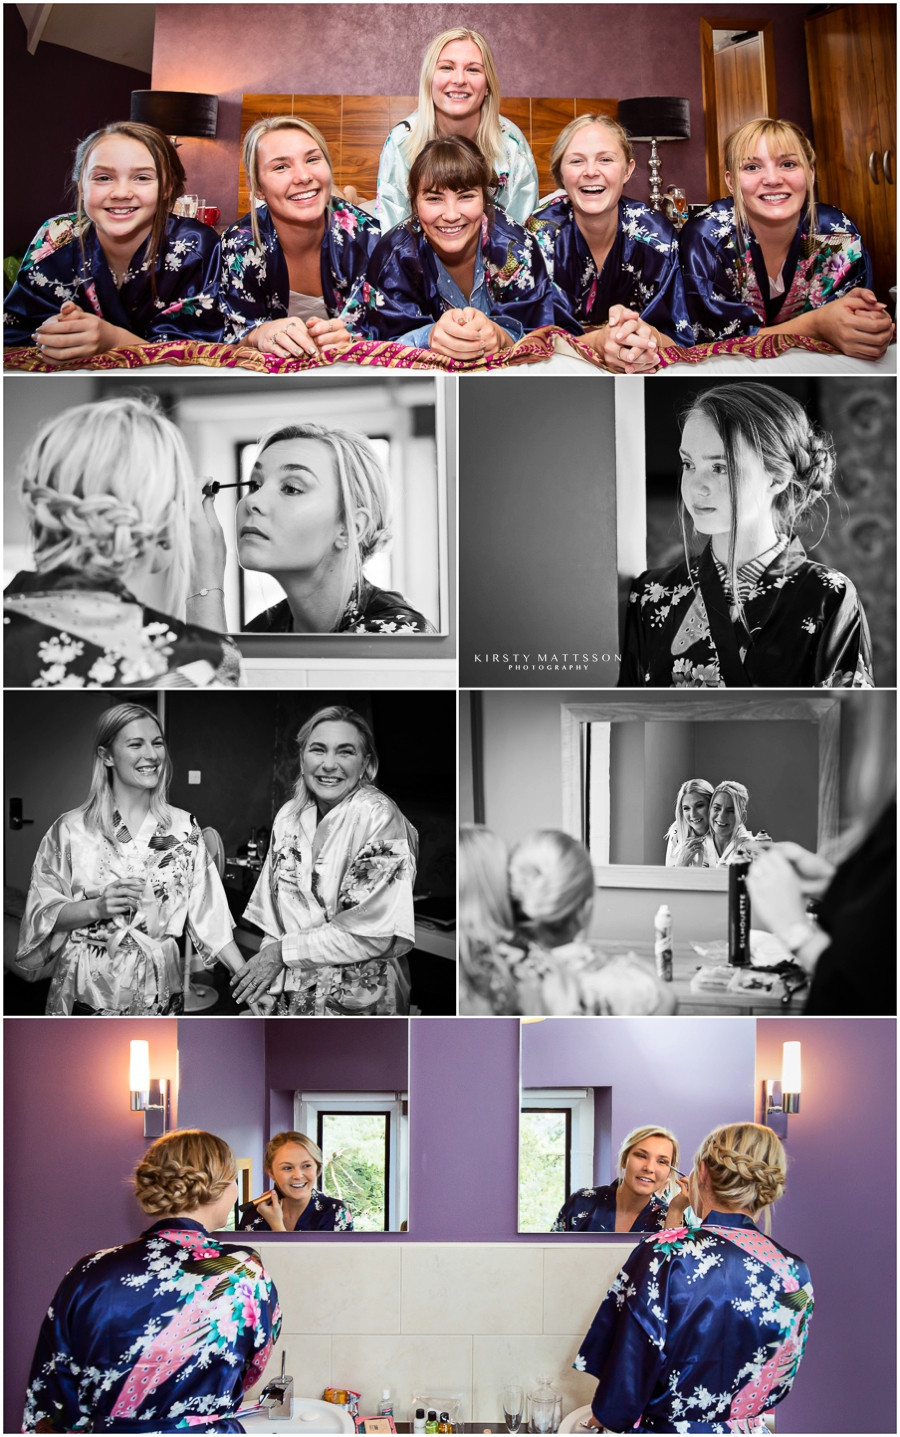 KM-rr-weddingphotography-1